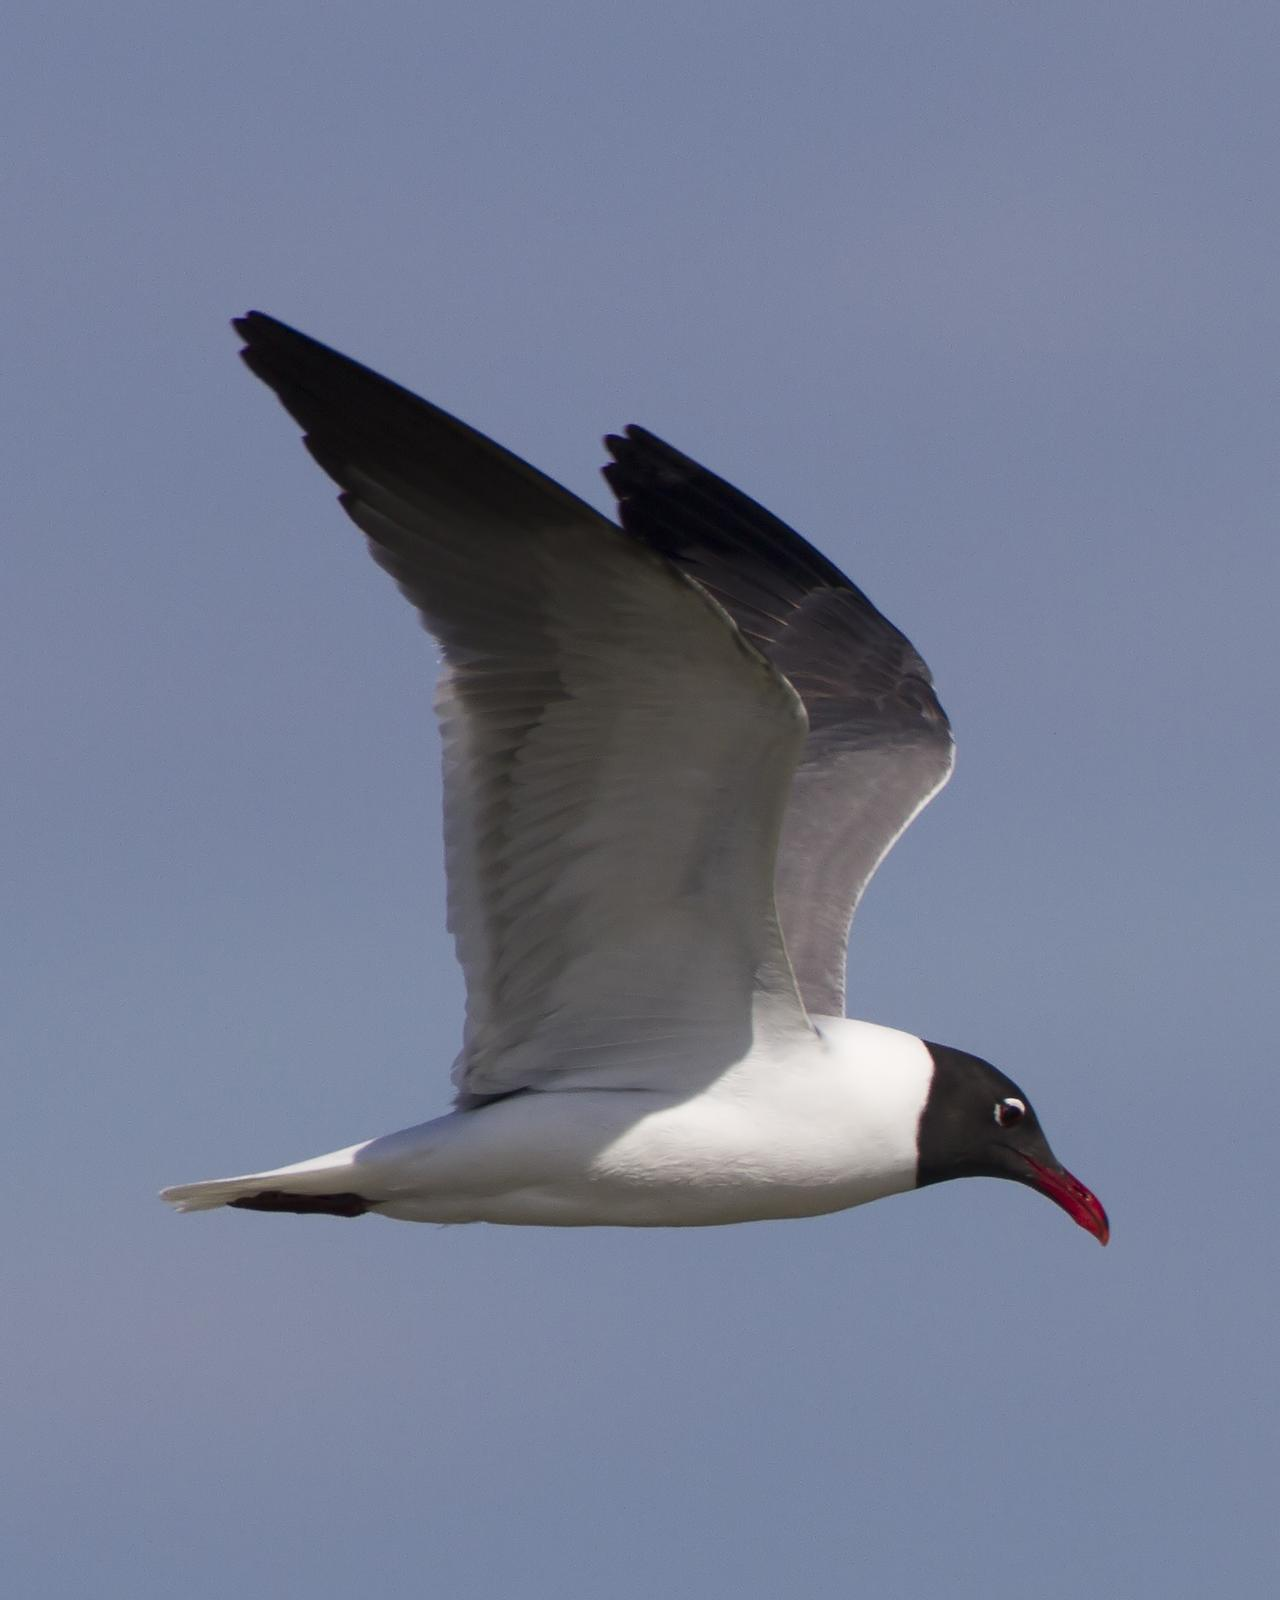 Laughing Gull Photo by Bill Adams